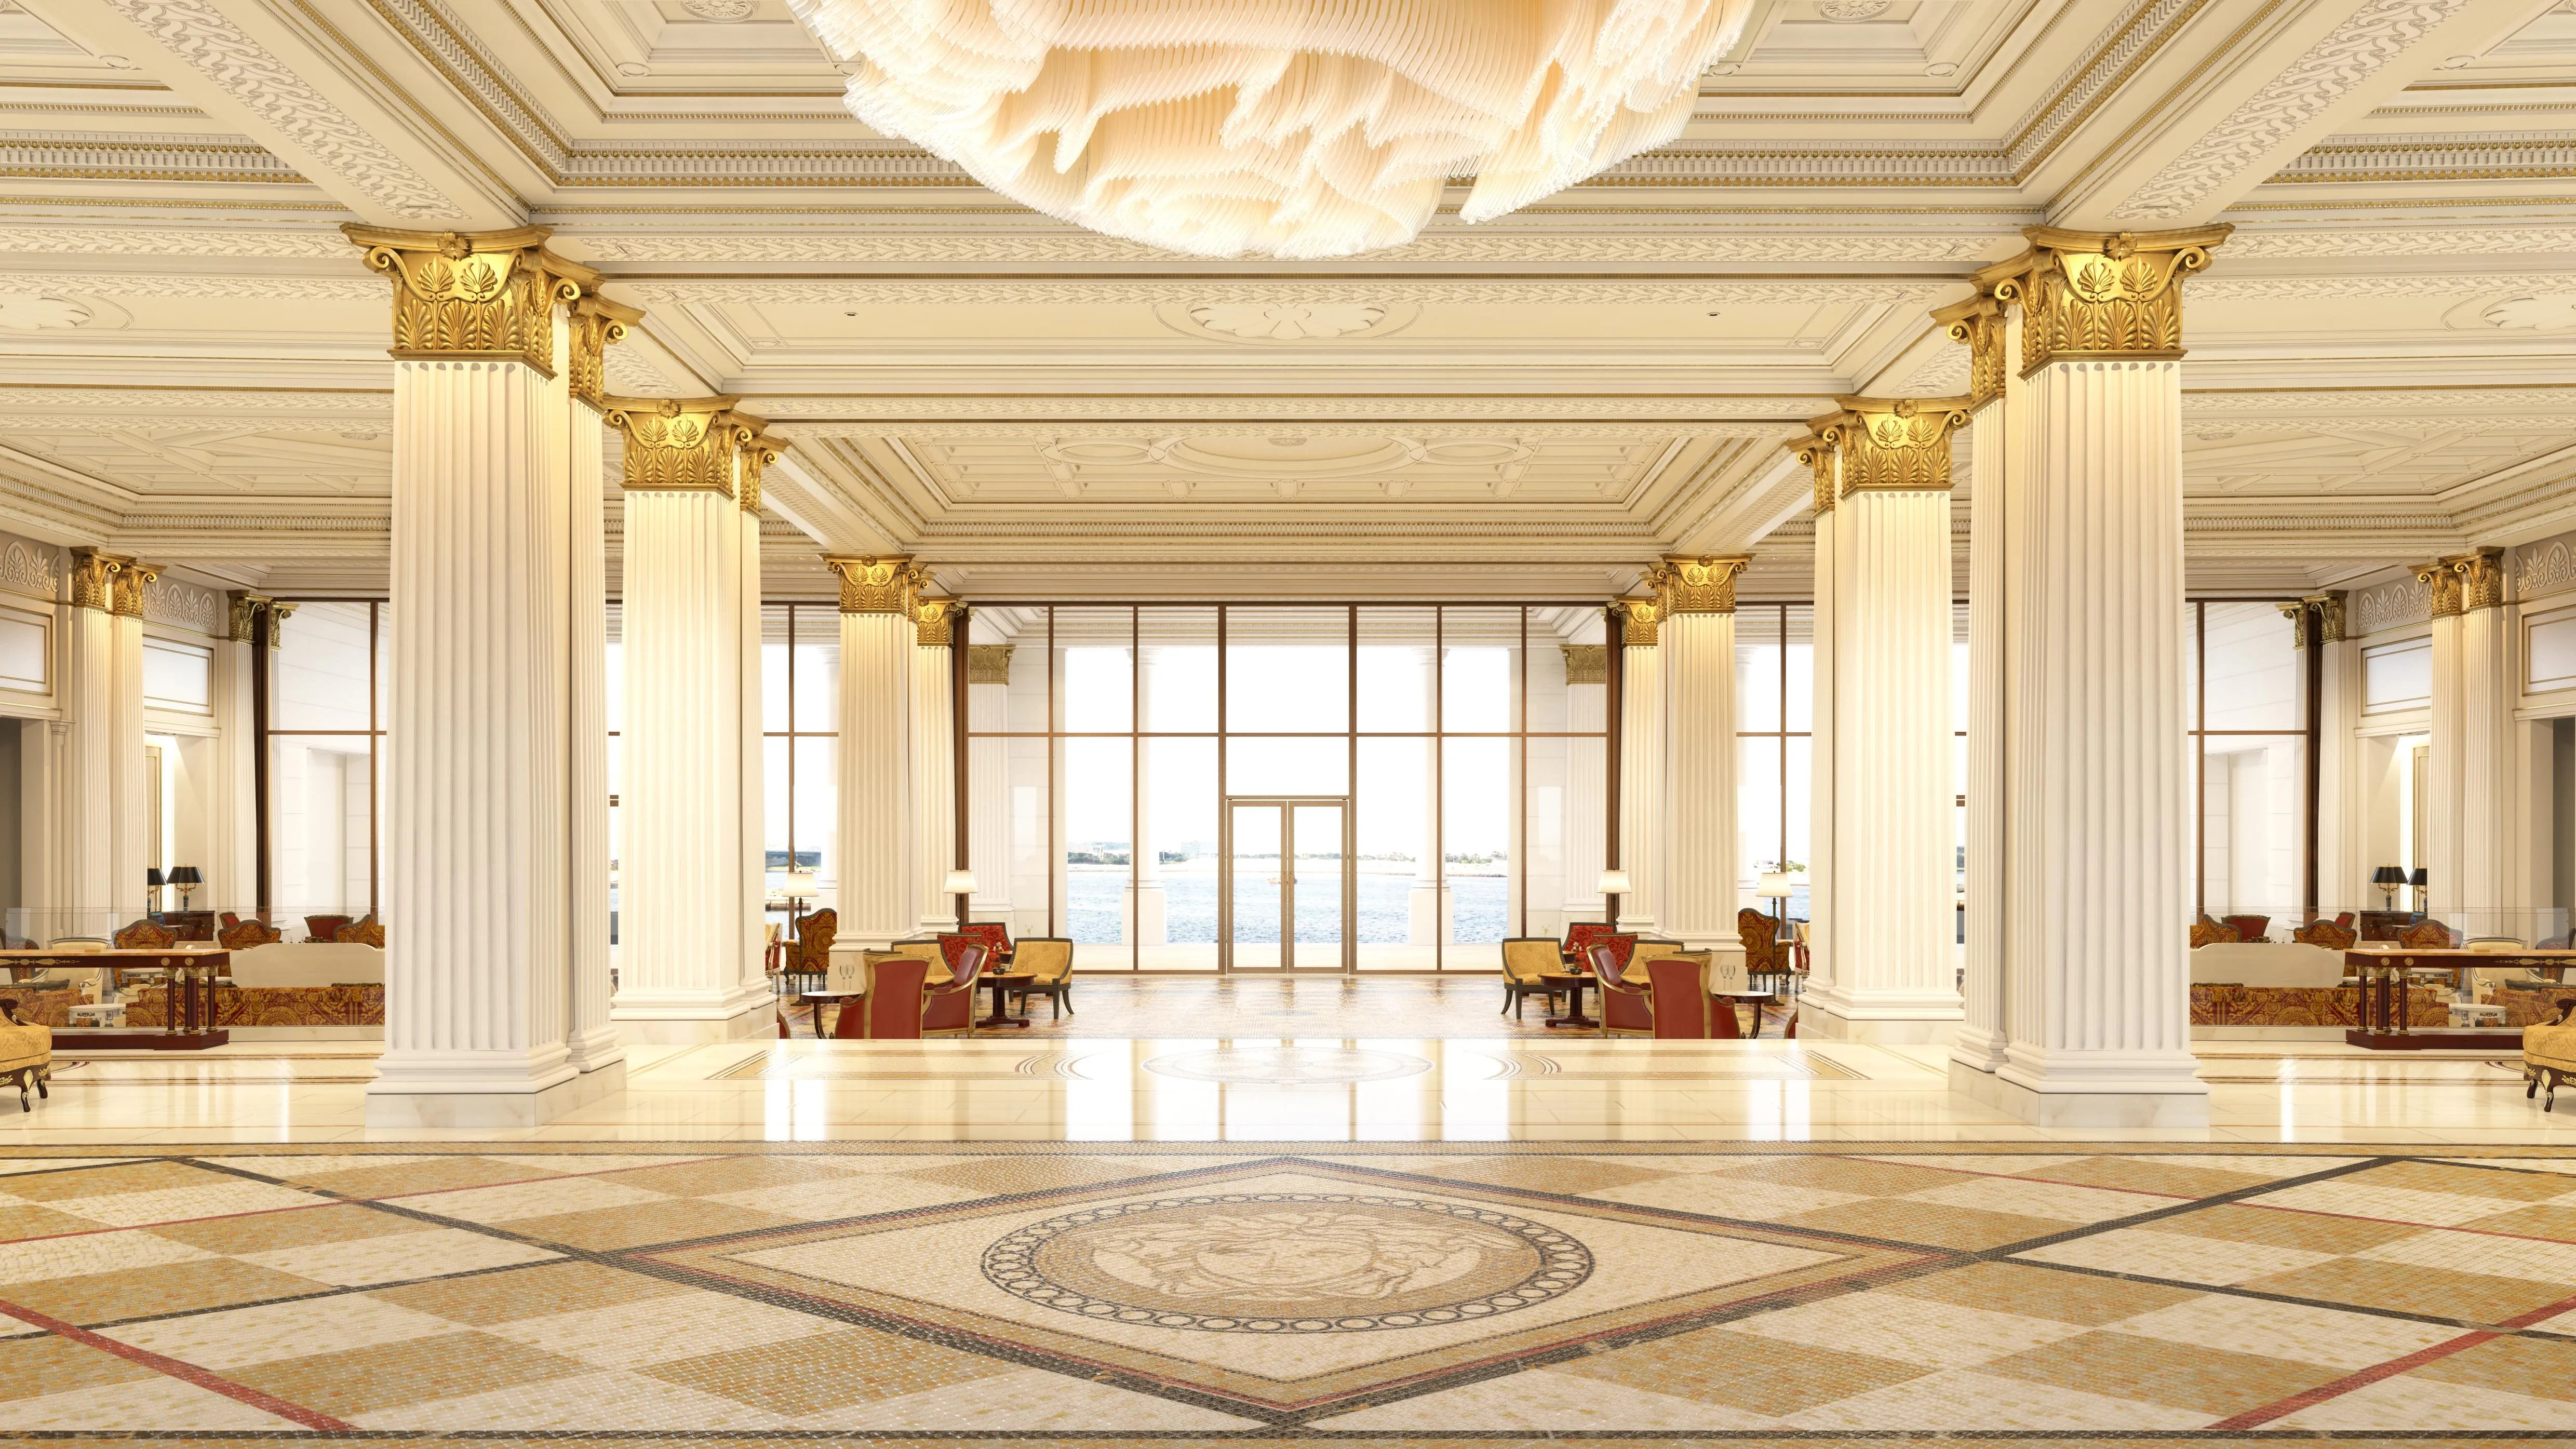 Palazzo Tenda The Worlds 5 Best Luxury Fashion Hotels Prestige Online